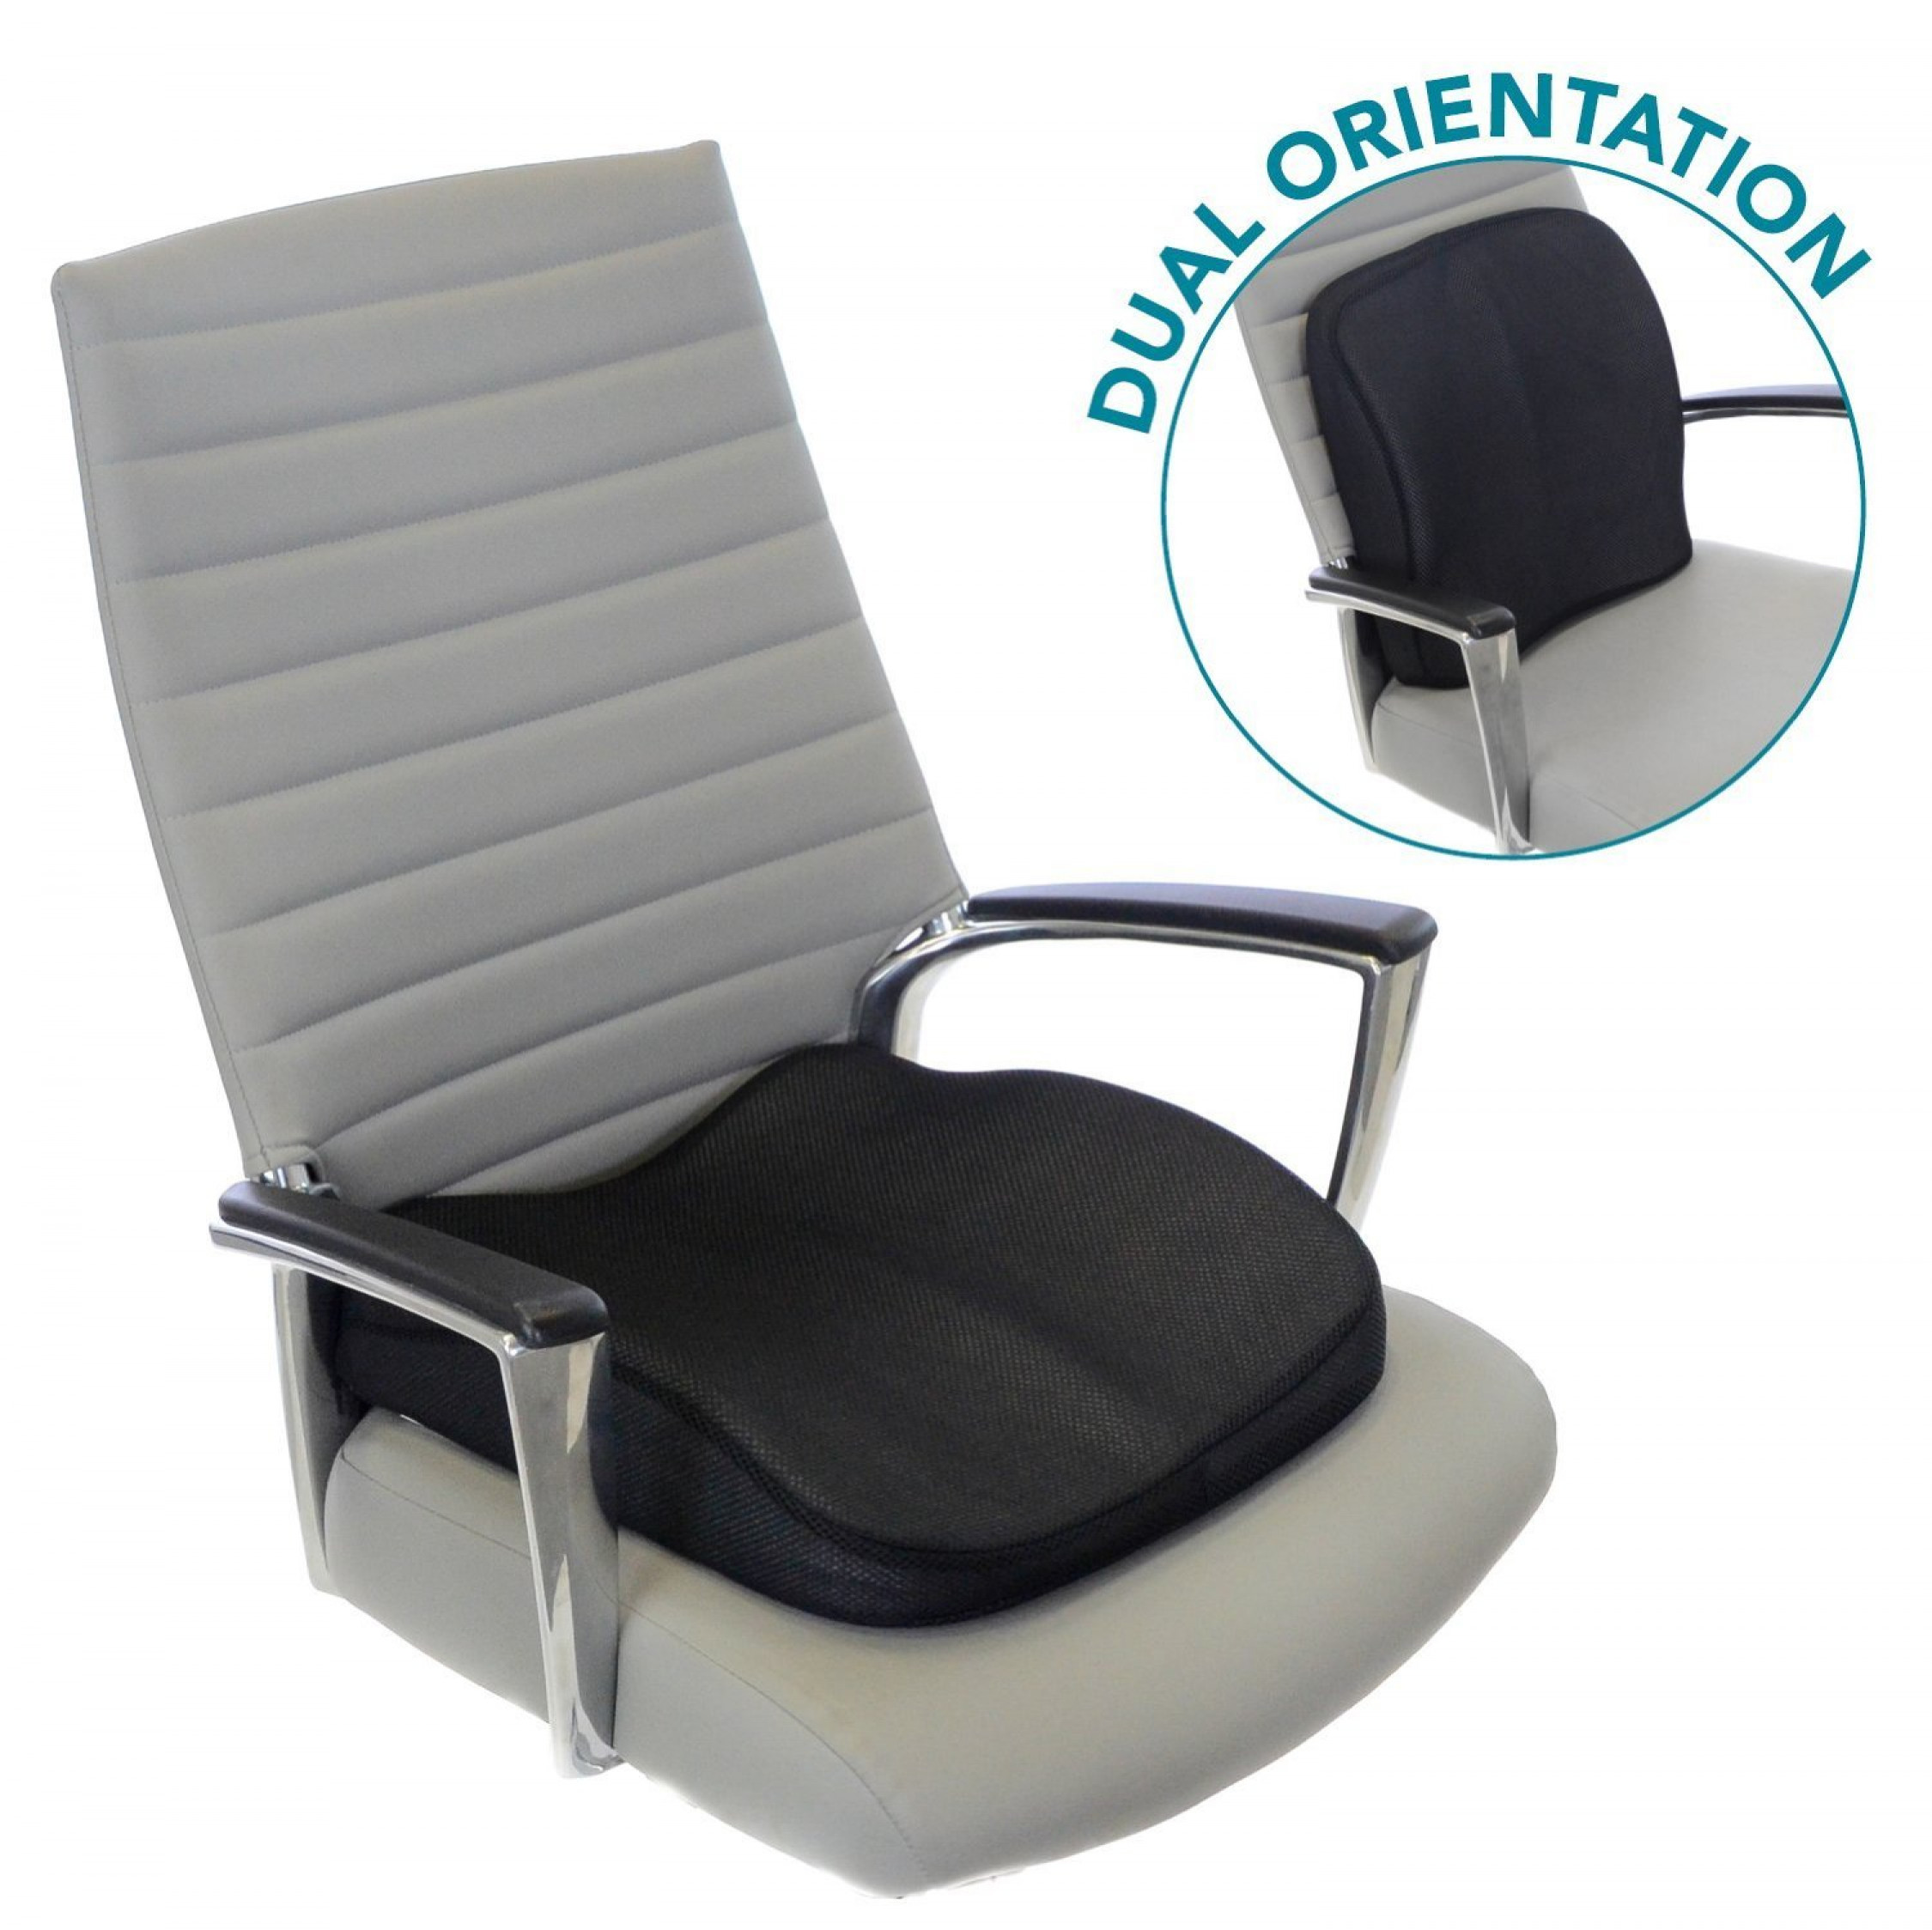 Back Support Office Chair Memory Foam Seat Cushion For Lower Back Support And Seat